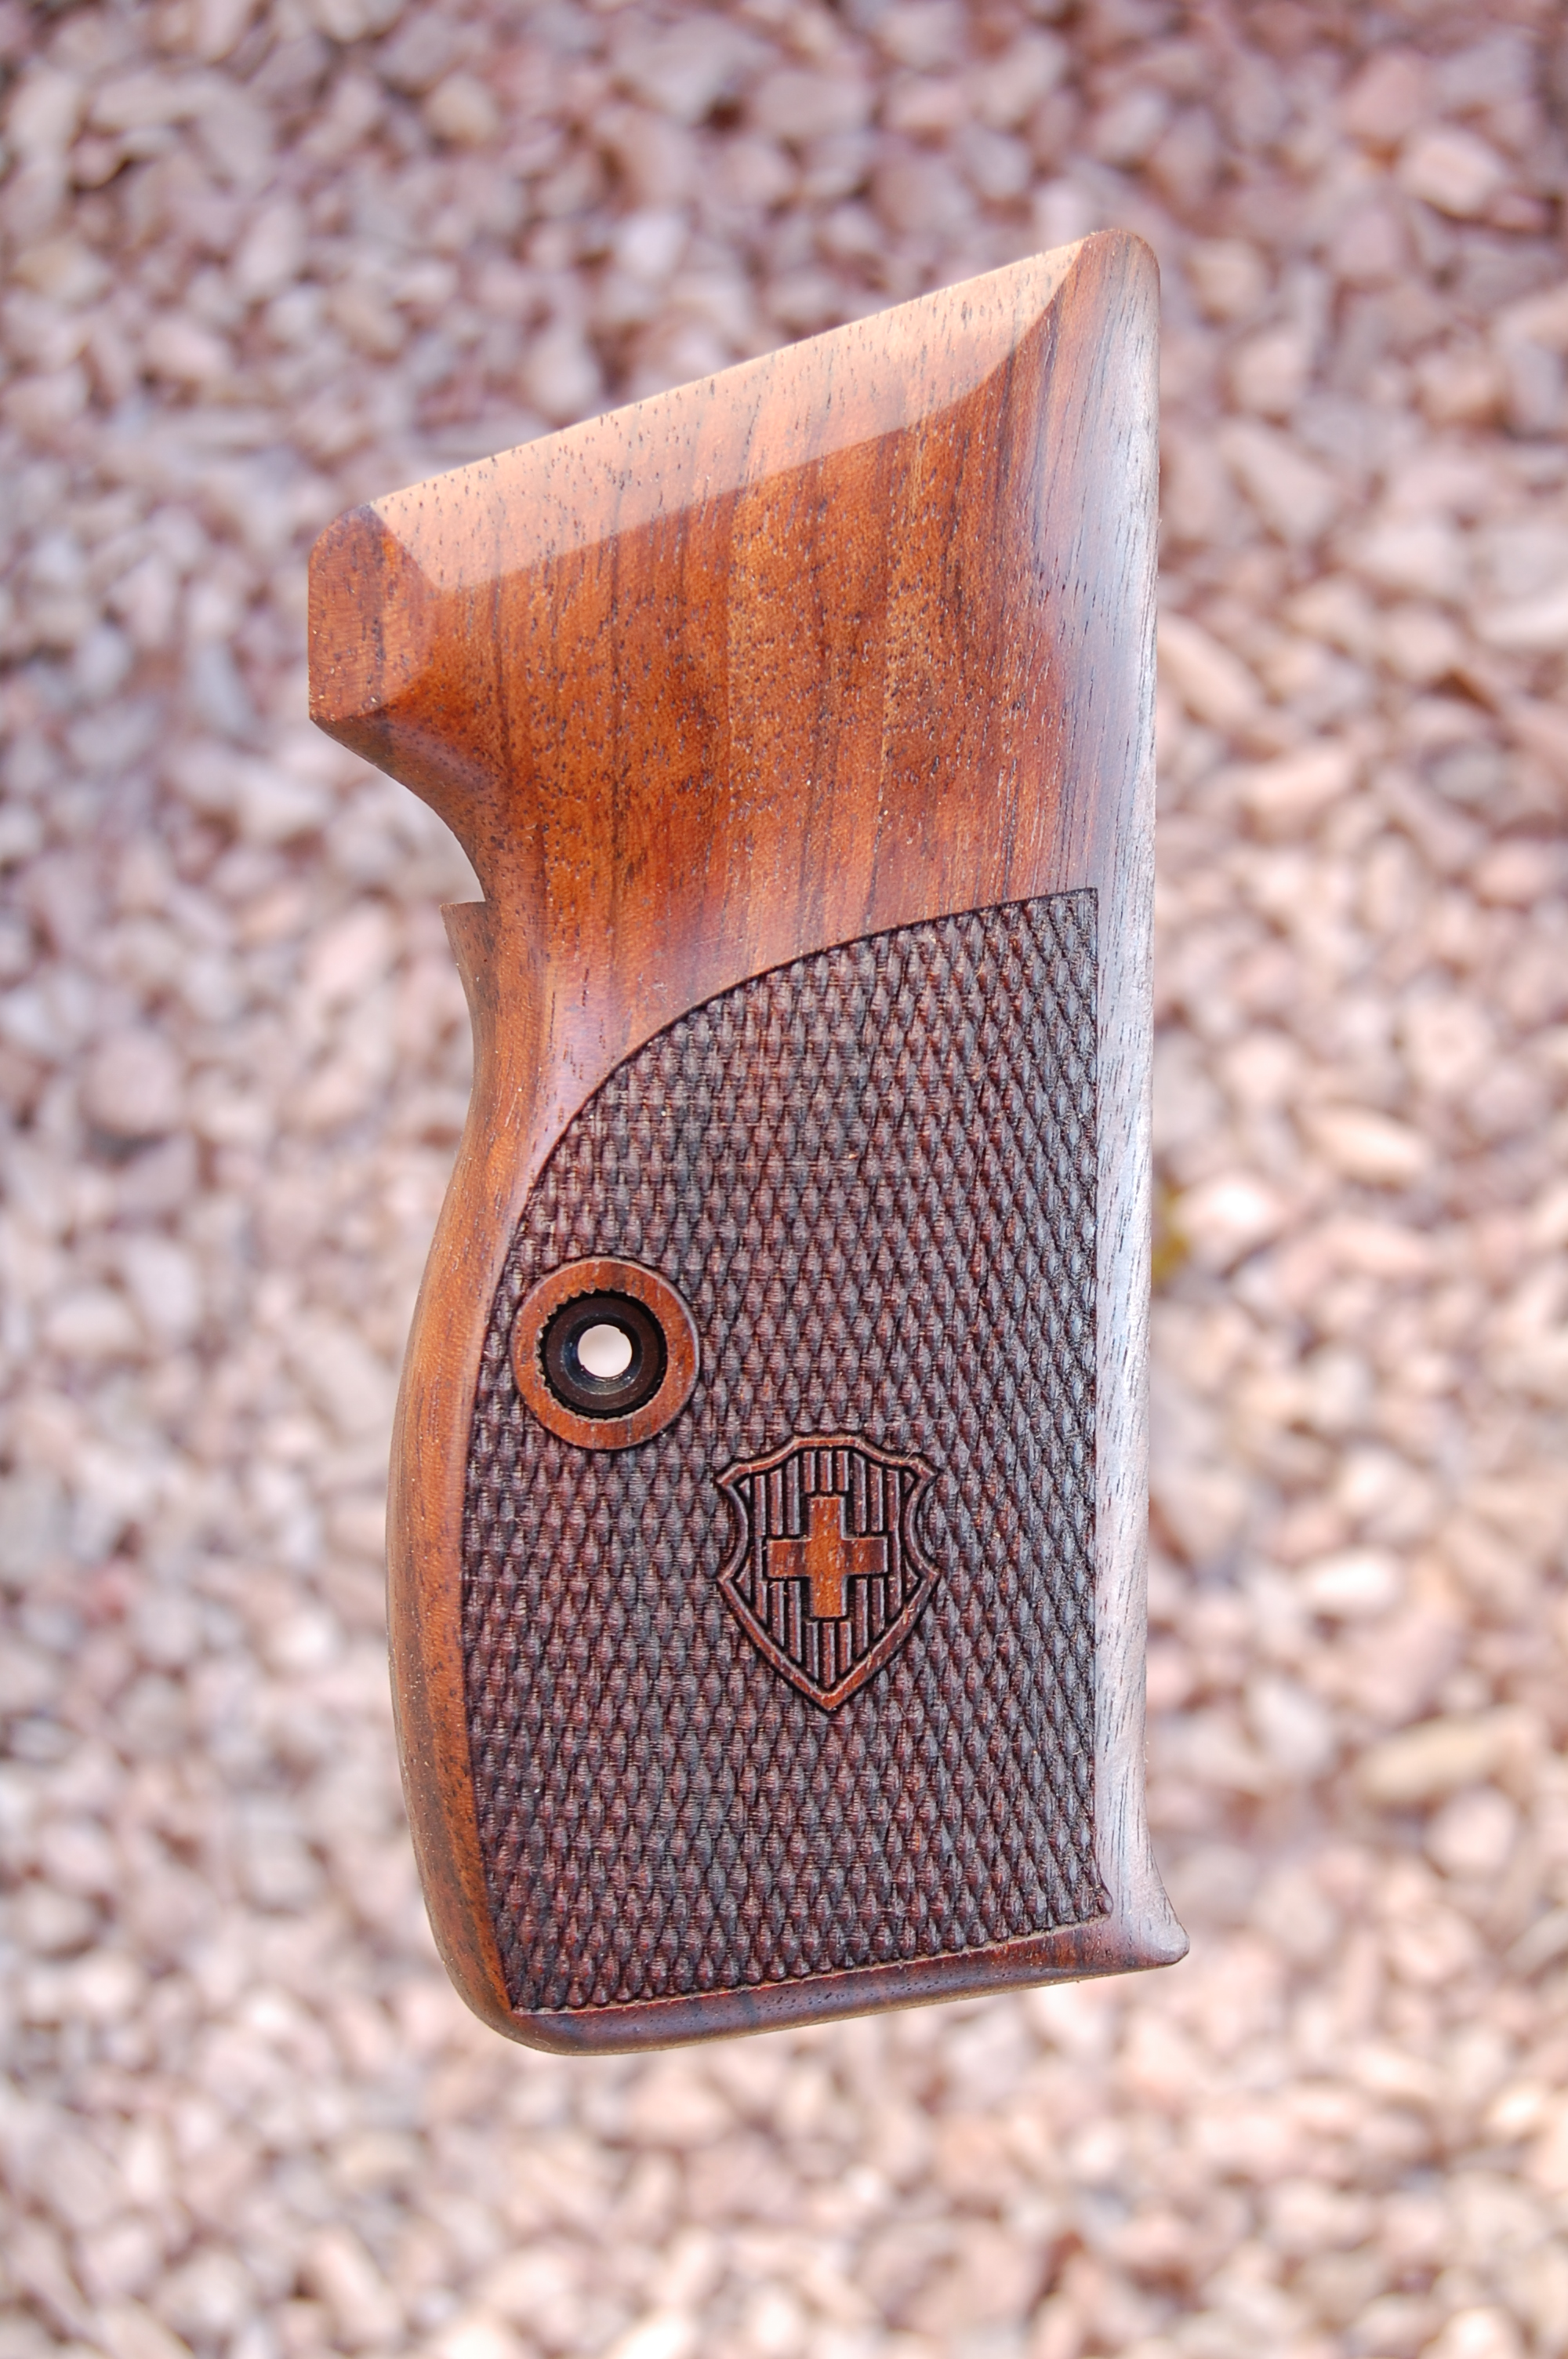 SIG P210 grips, bottom mag. release (checkered+logo) - full size